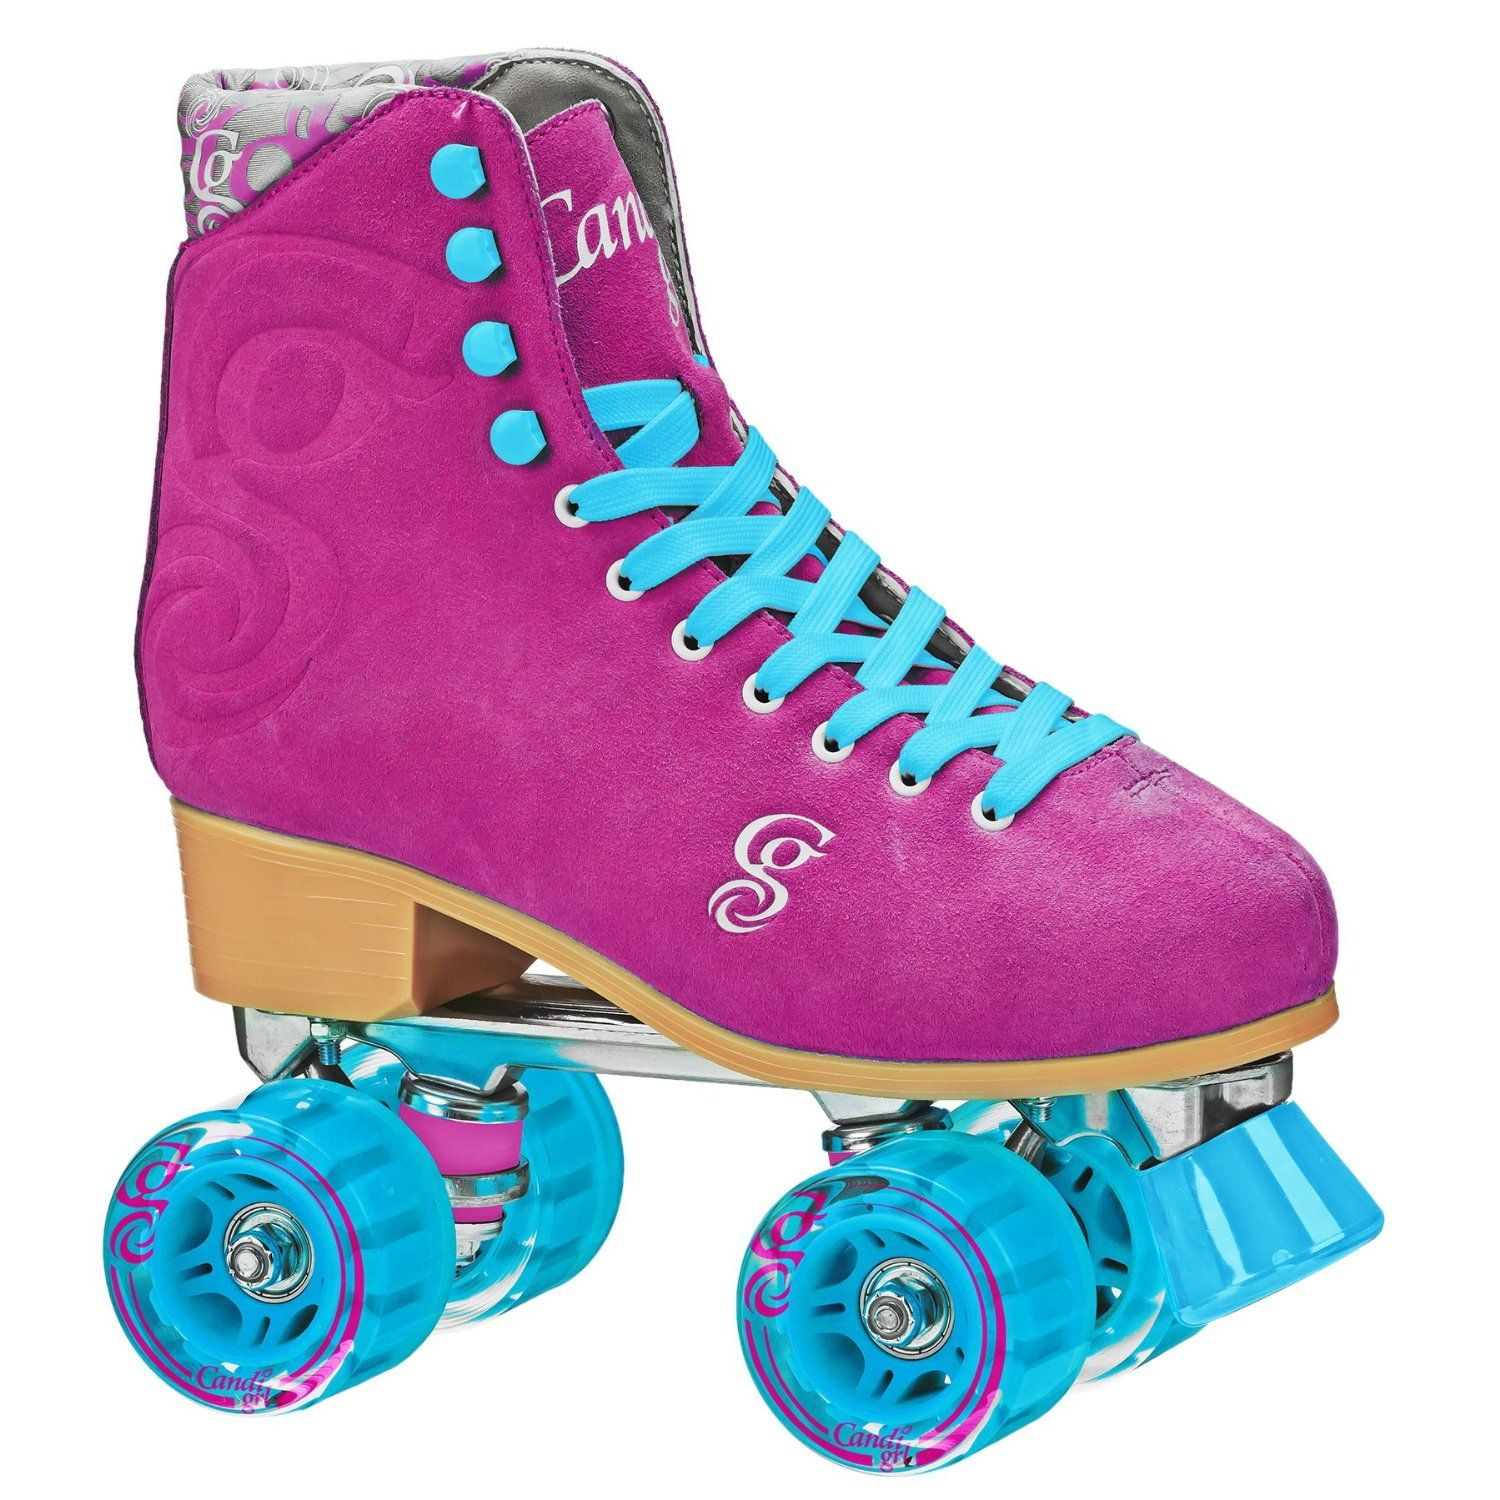 Rookie roller skates amazon - Amazon Com Roller Derby Candi Girl Women Colorful Roller Skates Sports Outdoors